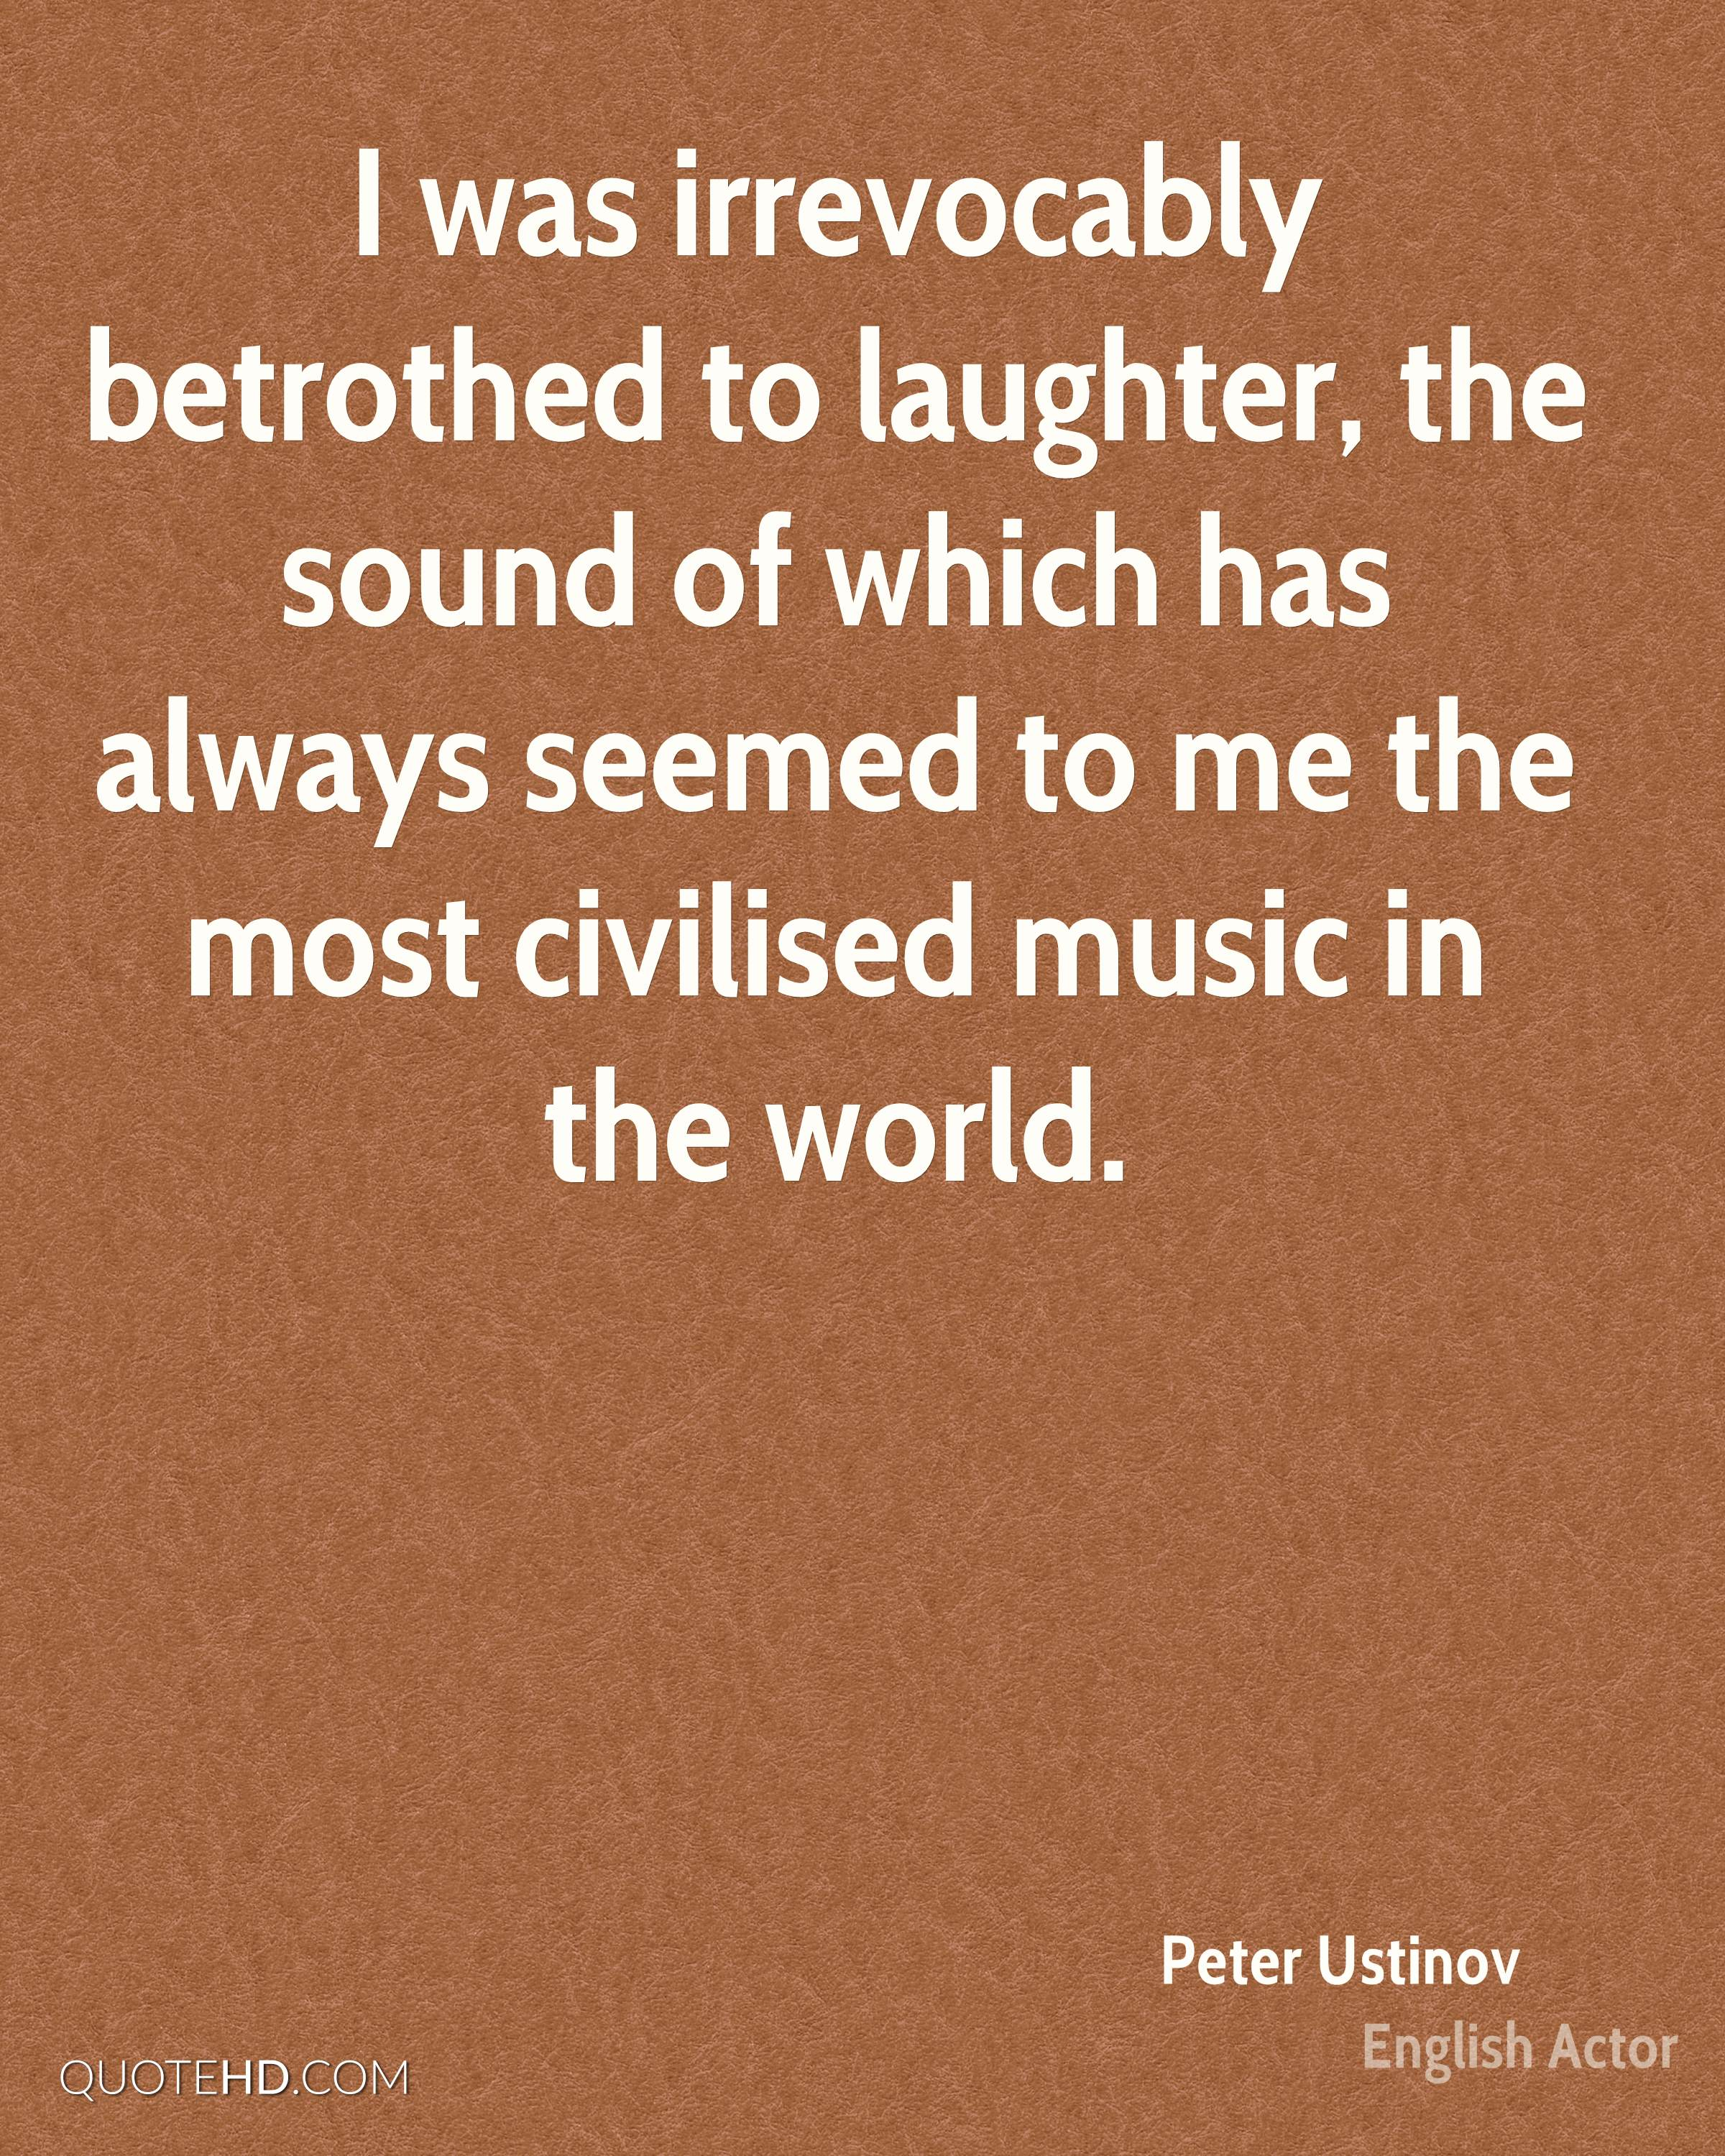 I was irrevocably betrothed to laughter, the sound of which has always seemed to me the most civilised music in the world.